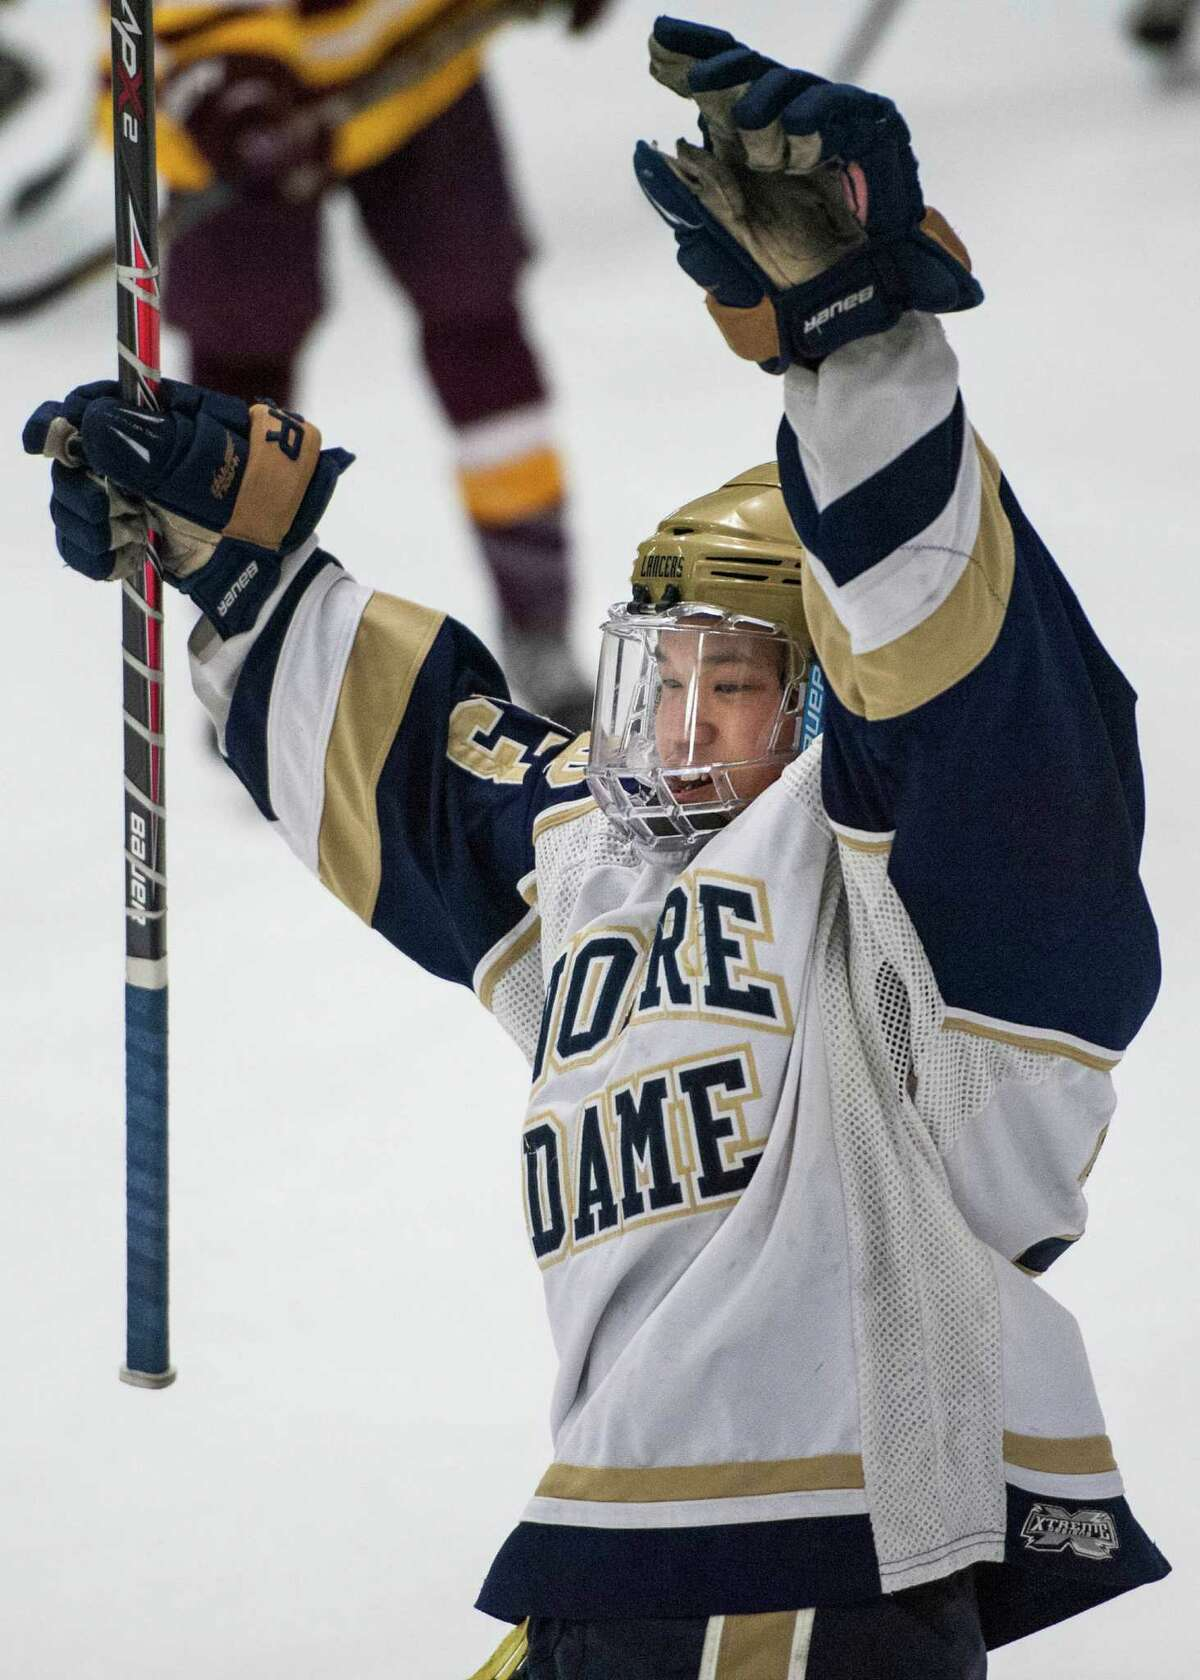 Notre Dame Fairfield high school's Jonny Suporn celebrates his team scoring a goal in the first period of a first round game of the CIAC division I boys ice hockey tournament against St. Joseph high school played at Milford Ice Pavilion, Milford, CT on Wednesday, March, 12th, 2014.